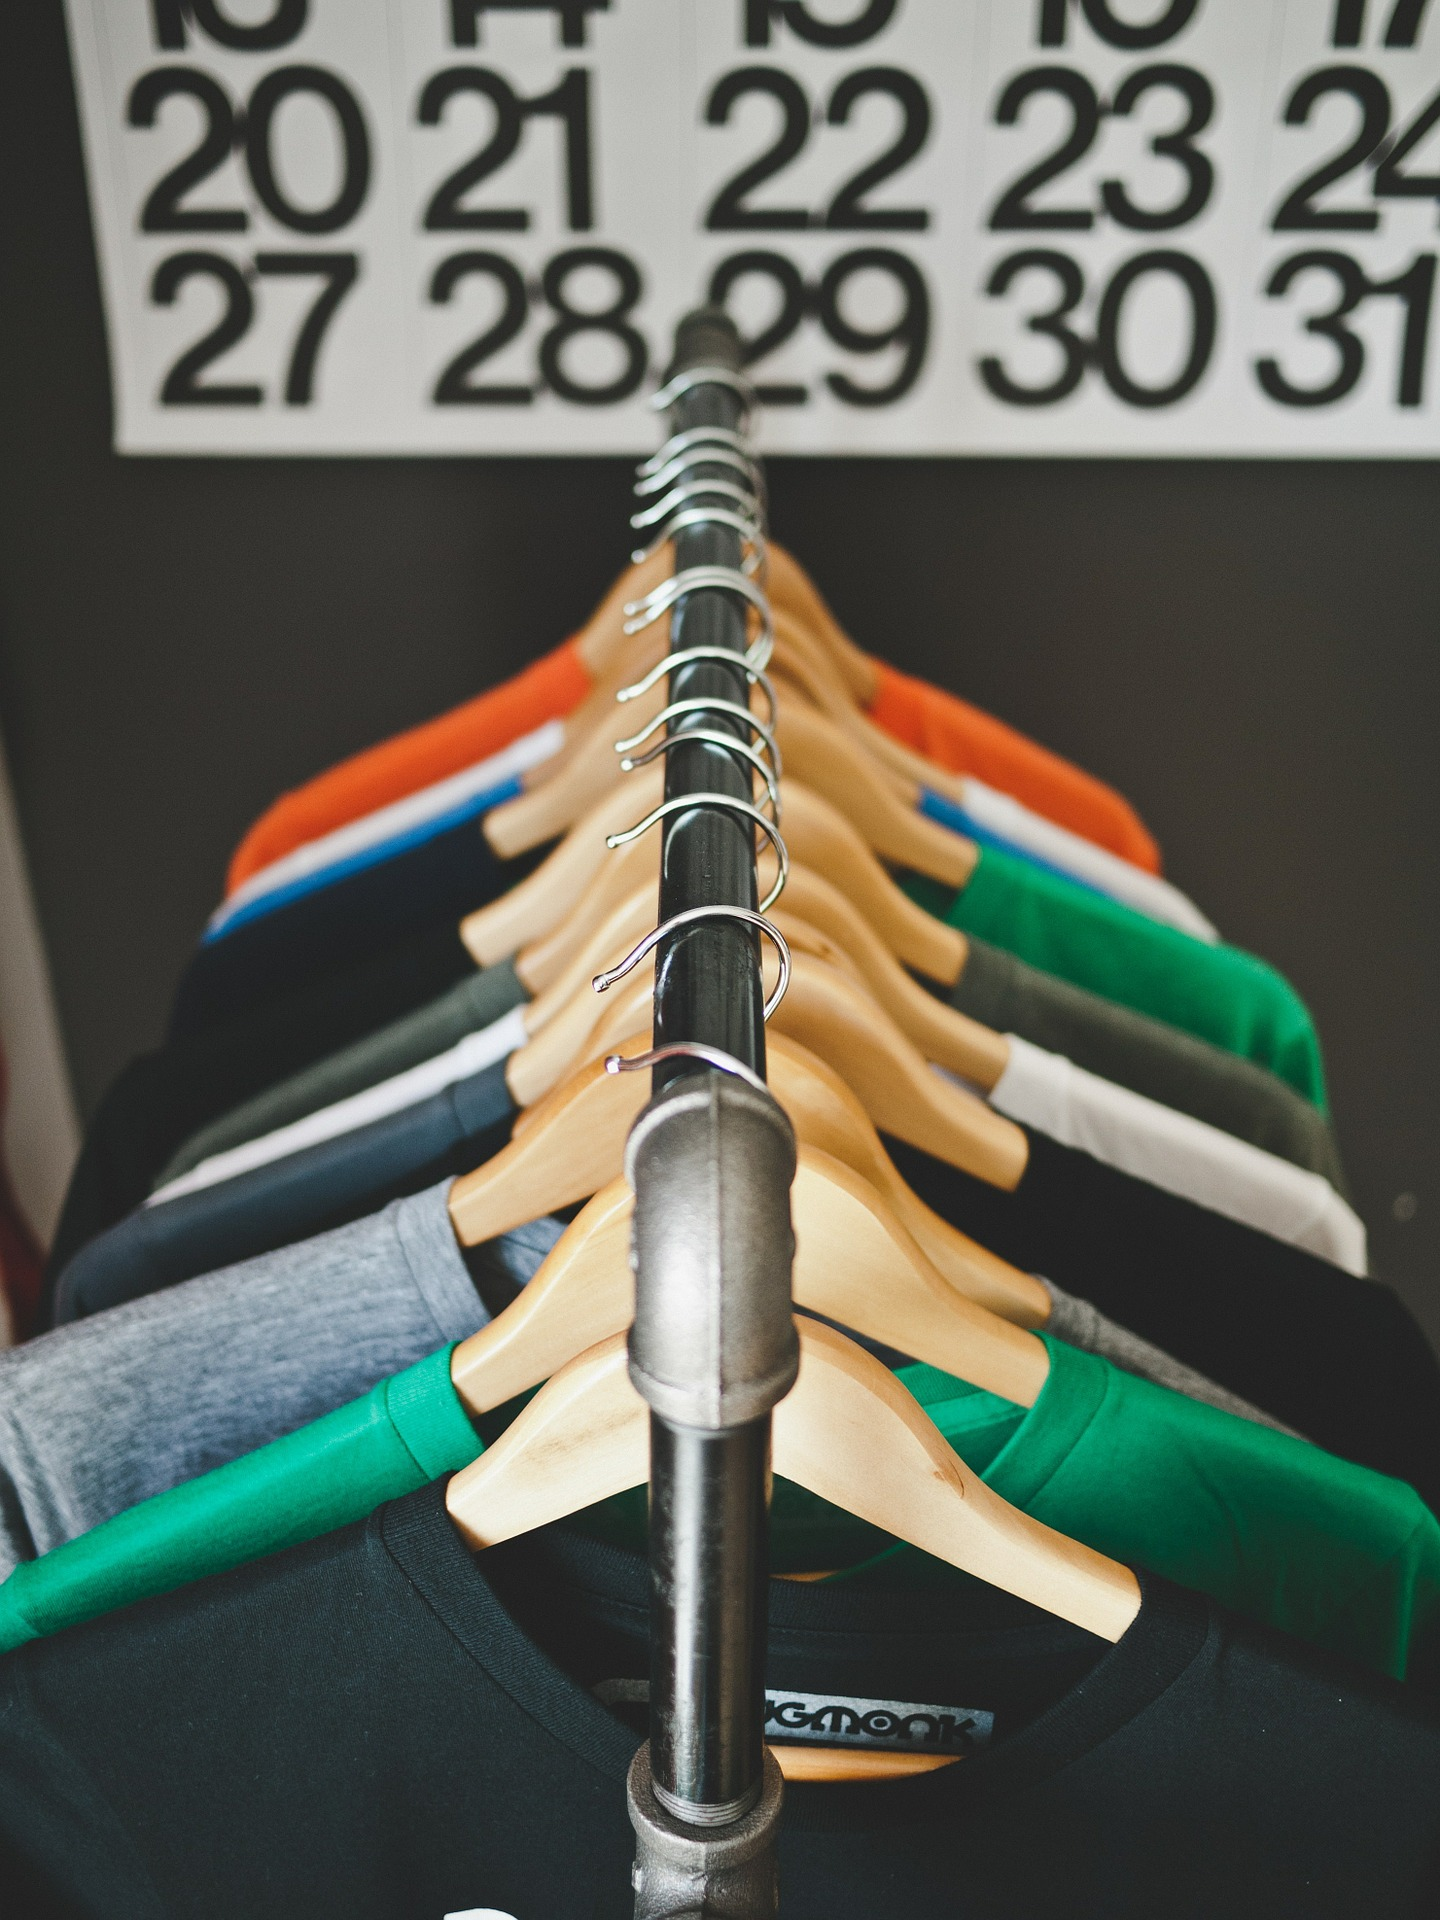 t-shirts on a clothing rack with calendar in background